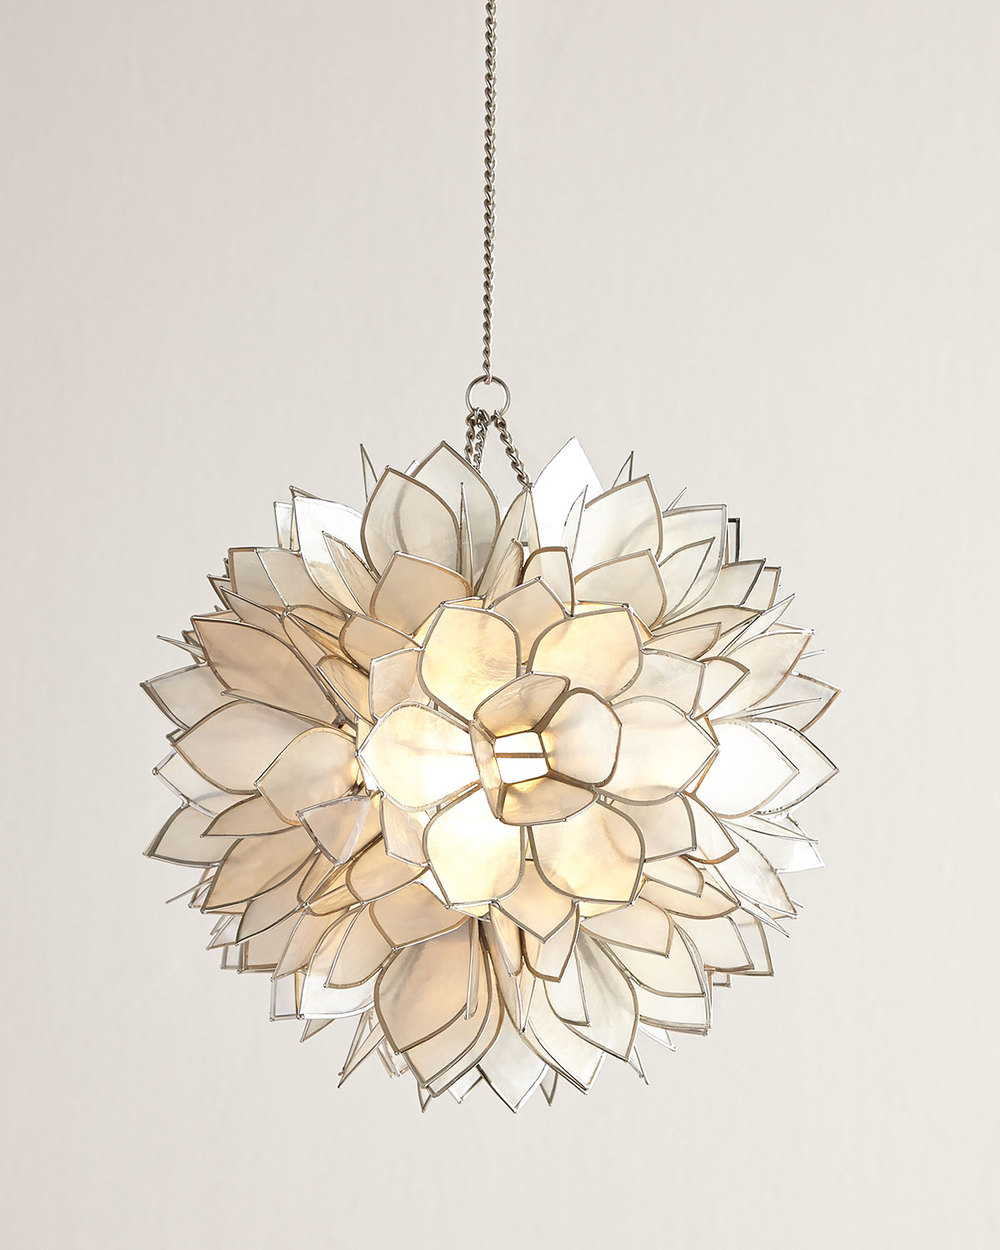 Ikea chandeliers at home and interior design ideas nice arubaitofo Choice Image